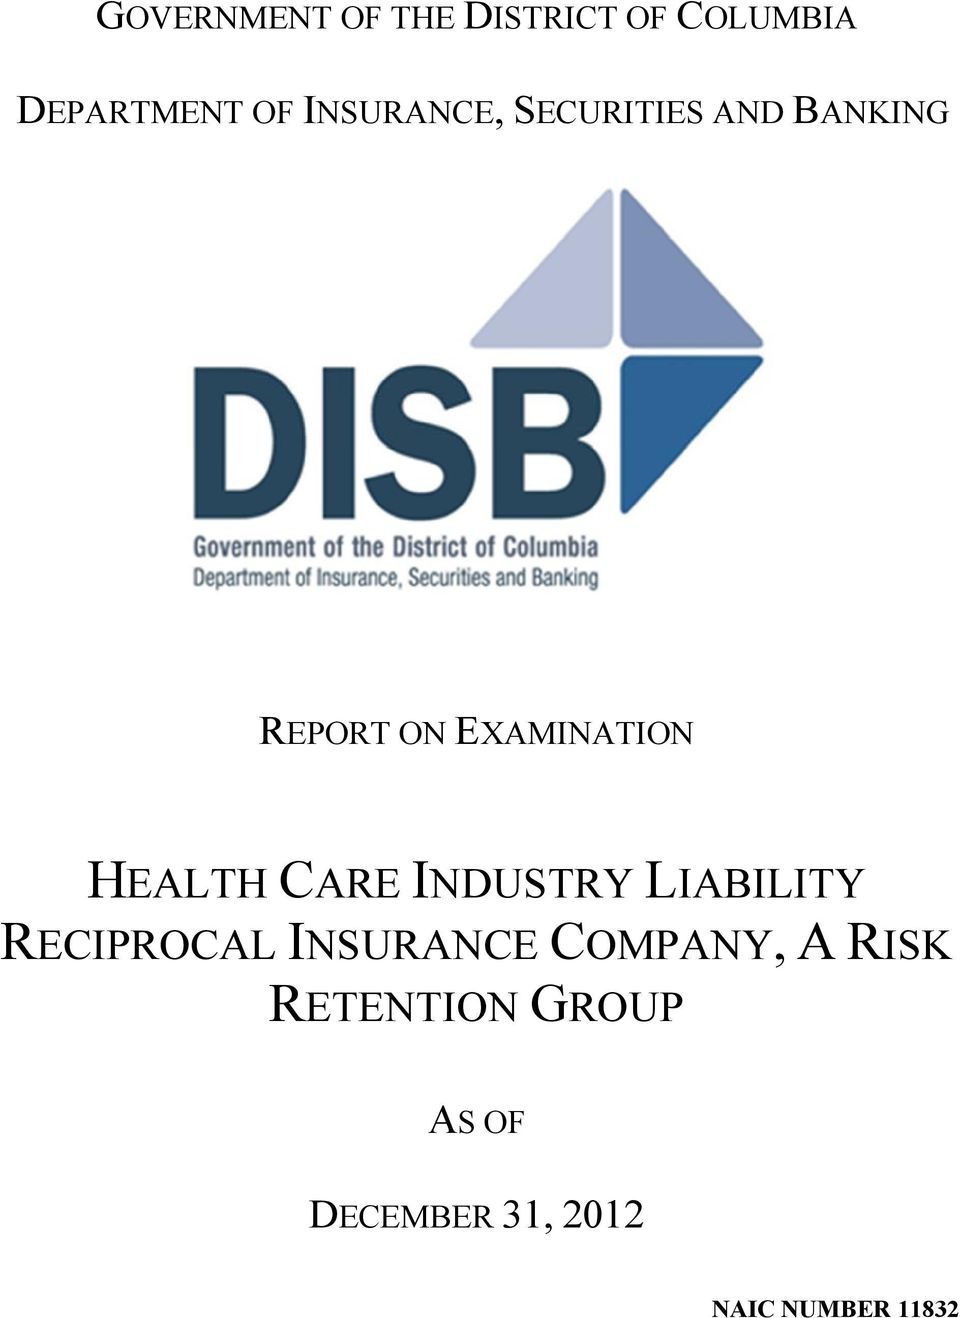 HEALTH CARE INDUSTRY LIABILITY RECIPROCAL INSURANCE